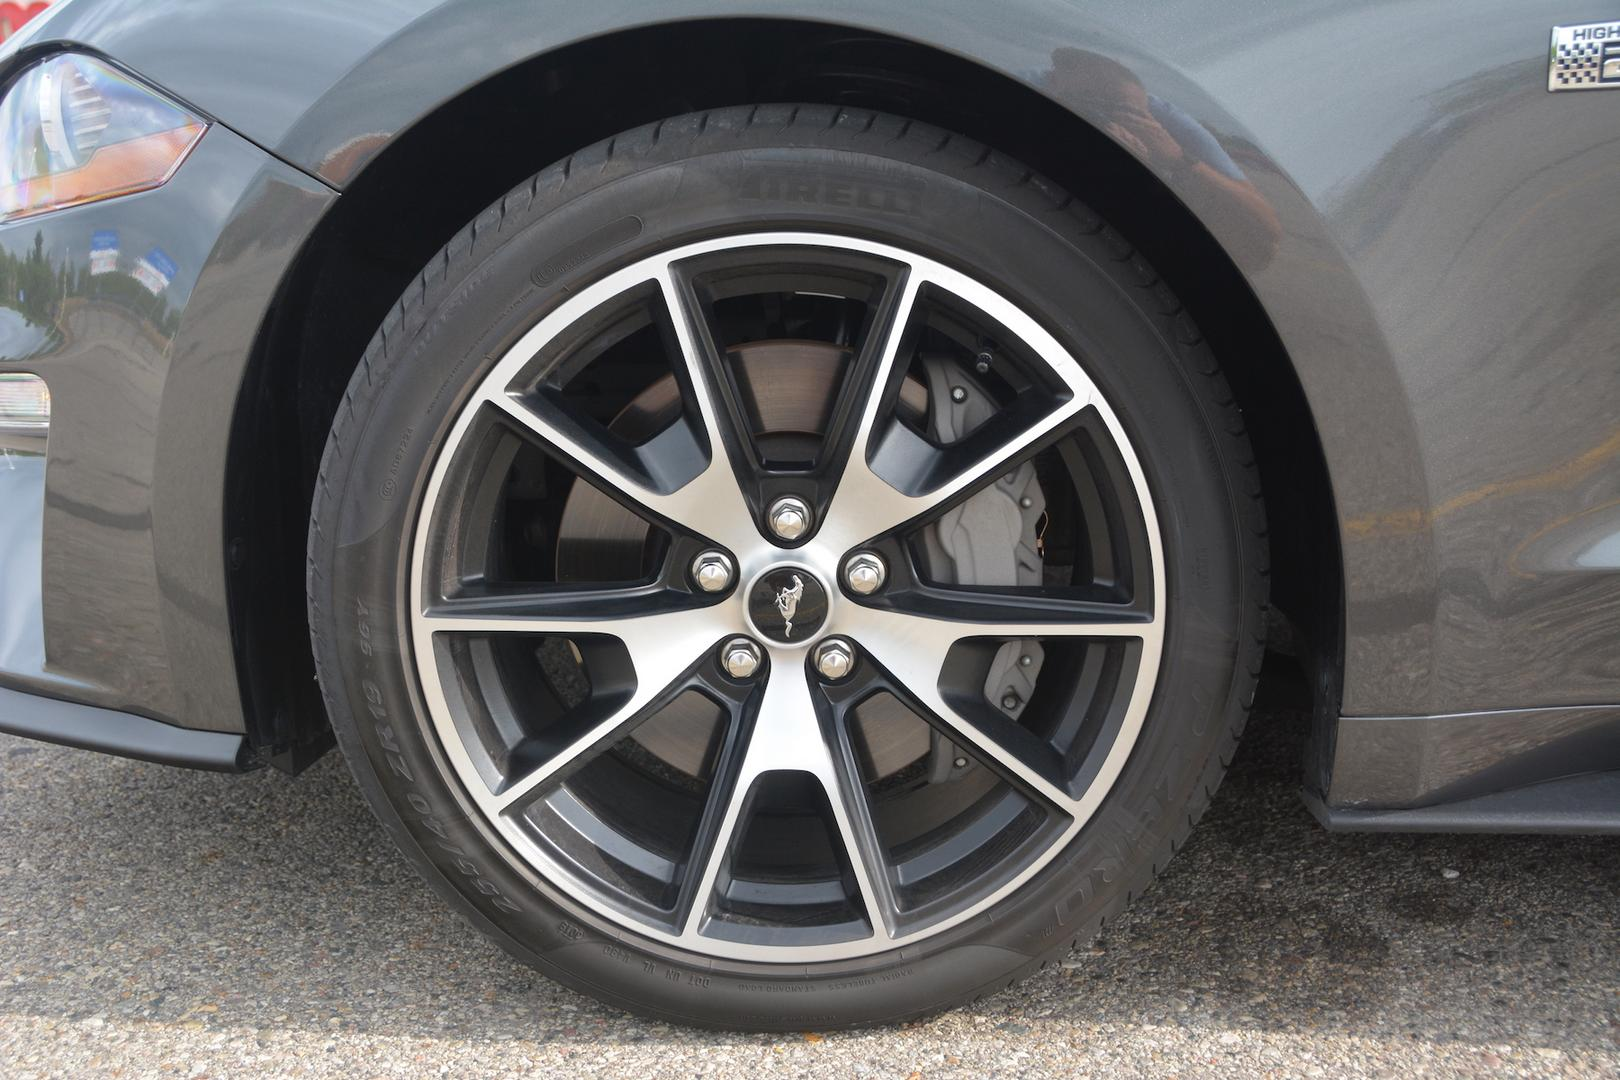 Ford Mustang EcoBoost Wheels